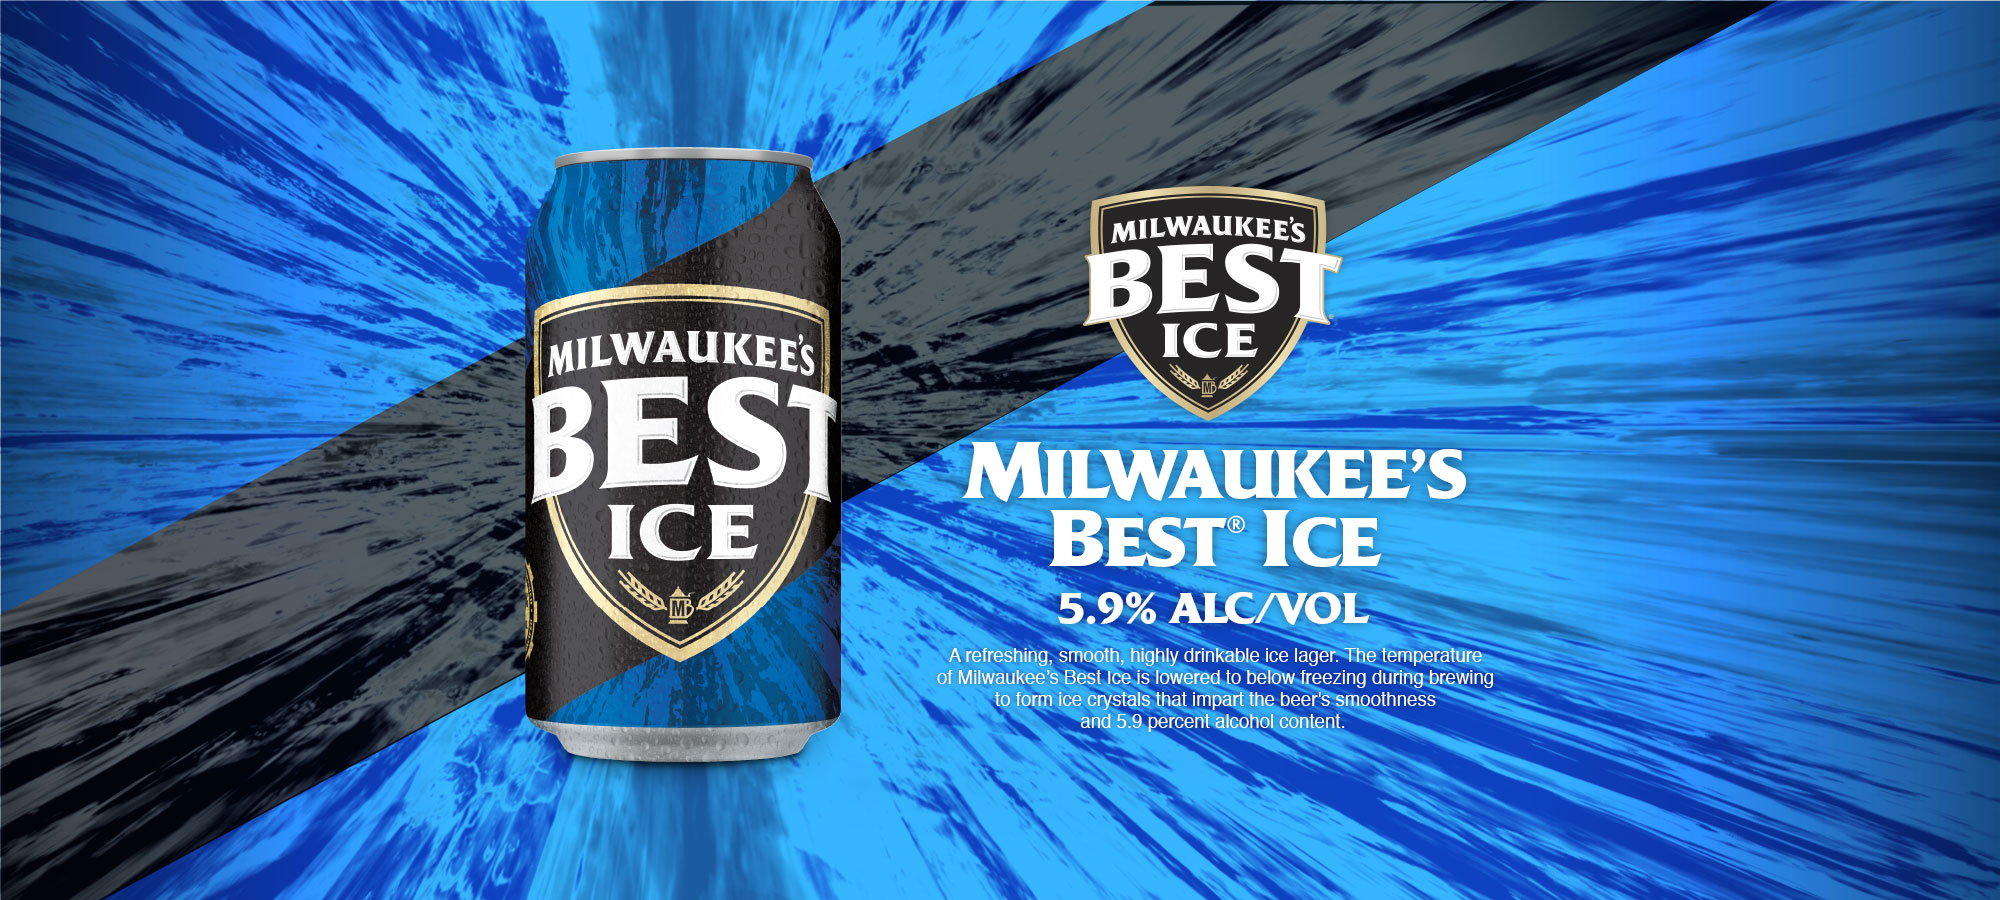 Milwaukee's Best Ice Mobile